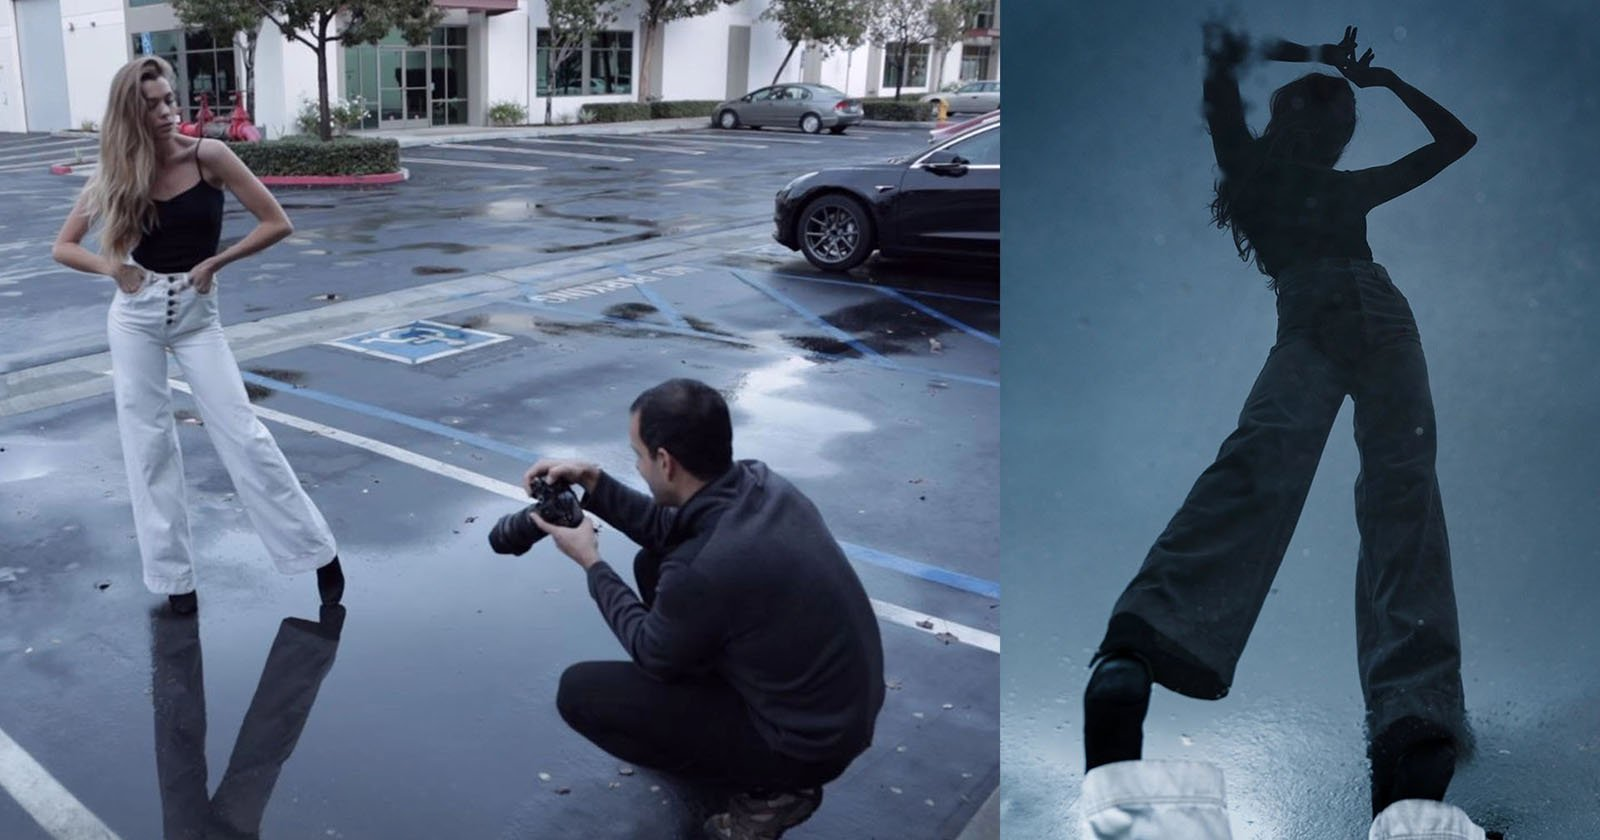 5 Creative Portraits in a Crappy Parking Lot